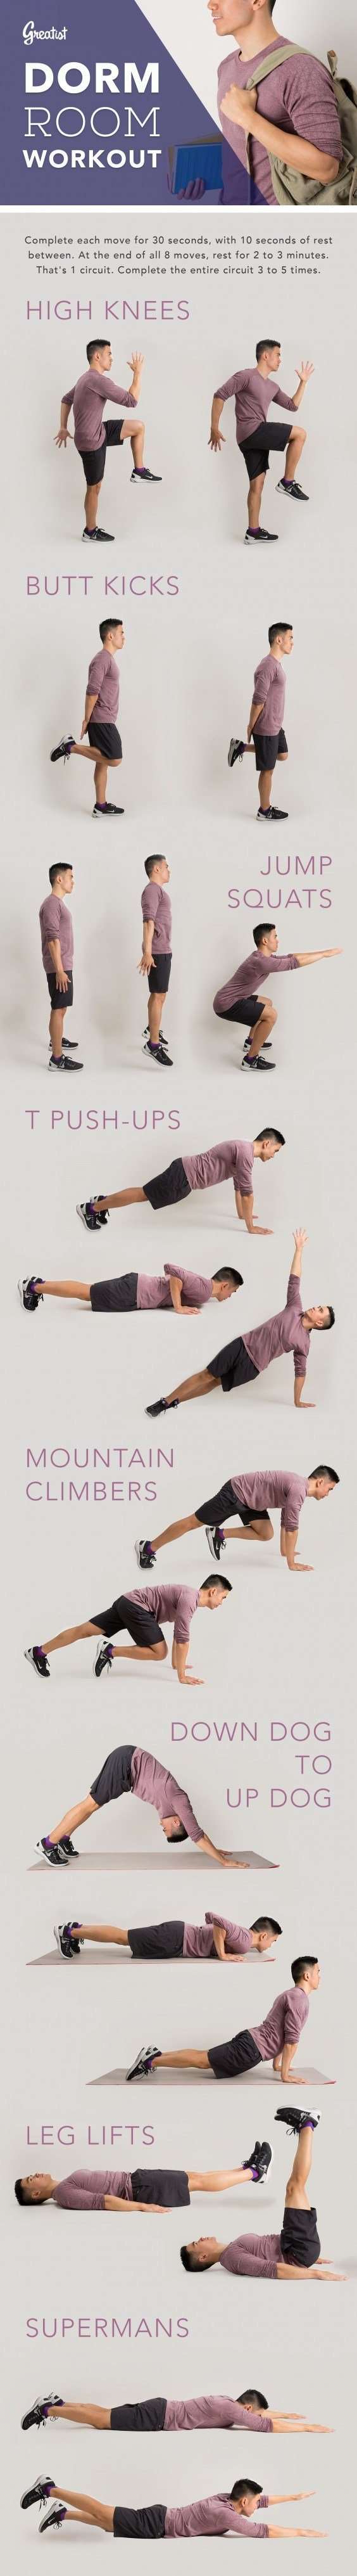 Best 8 Bodyweight Exercises To Try In Your Dorm Room Greatist With Pictures